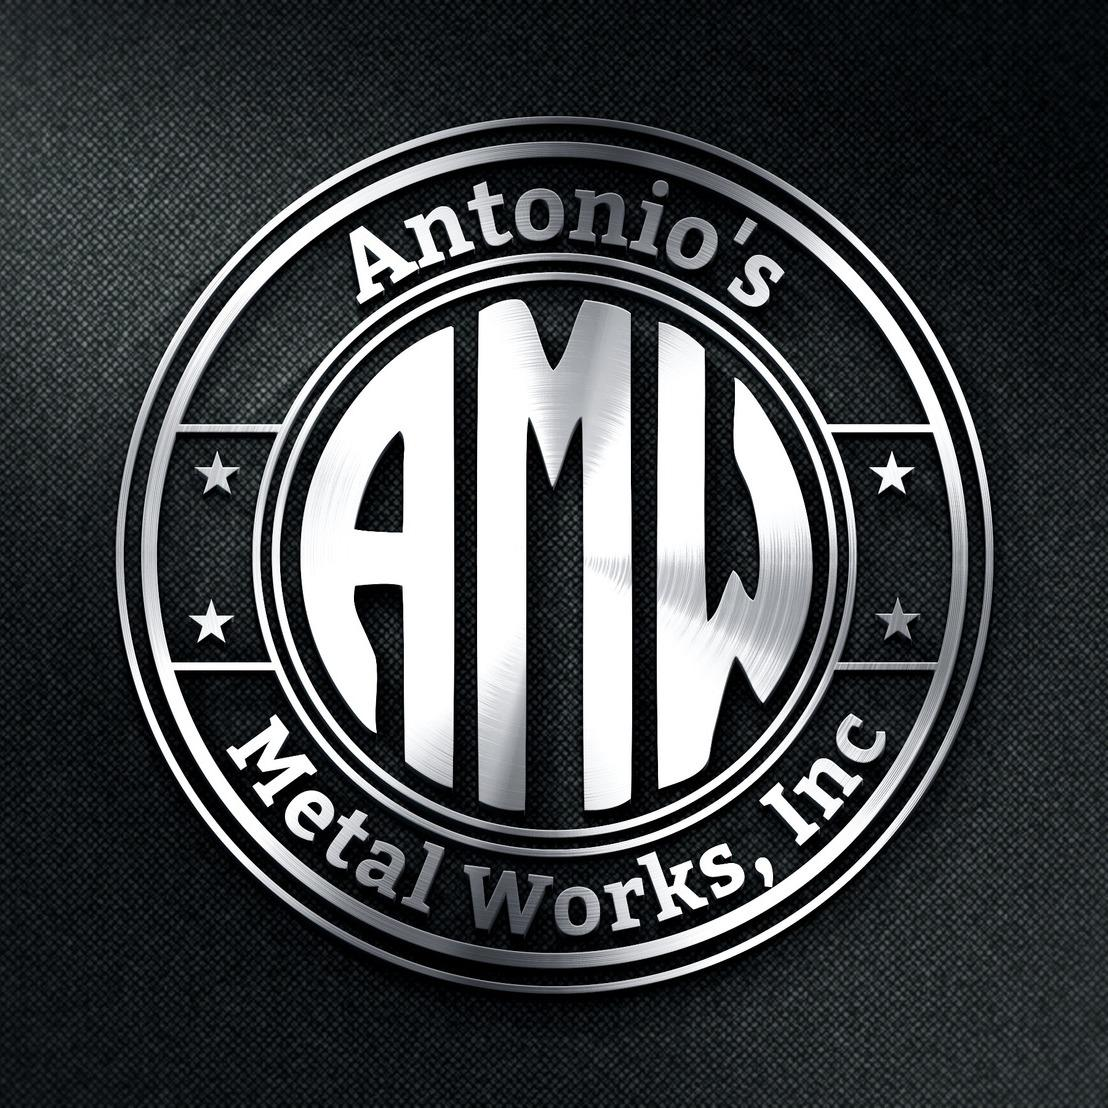 Antonio's  Metal Works, Inc.